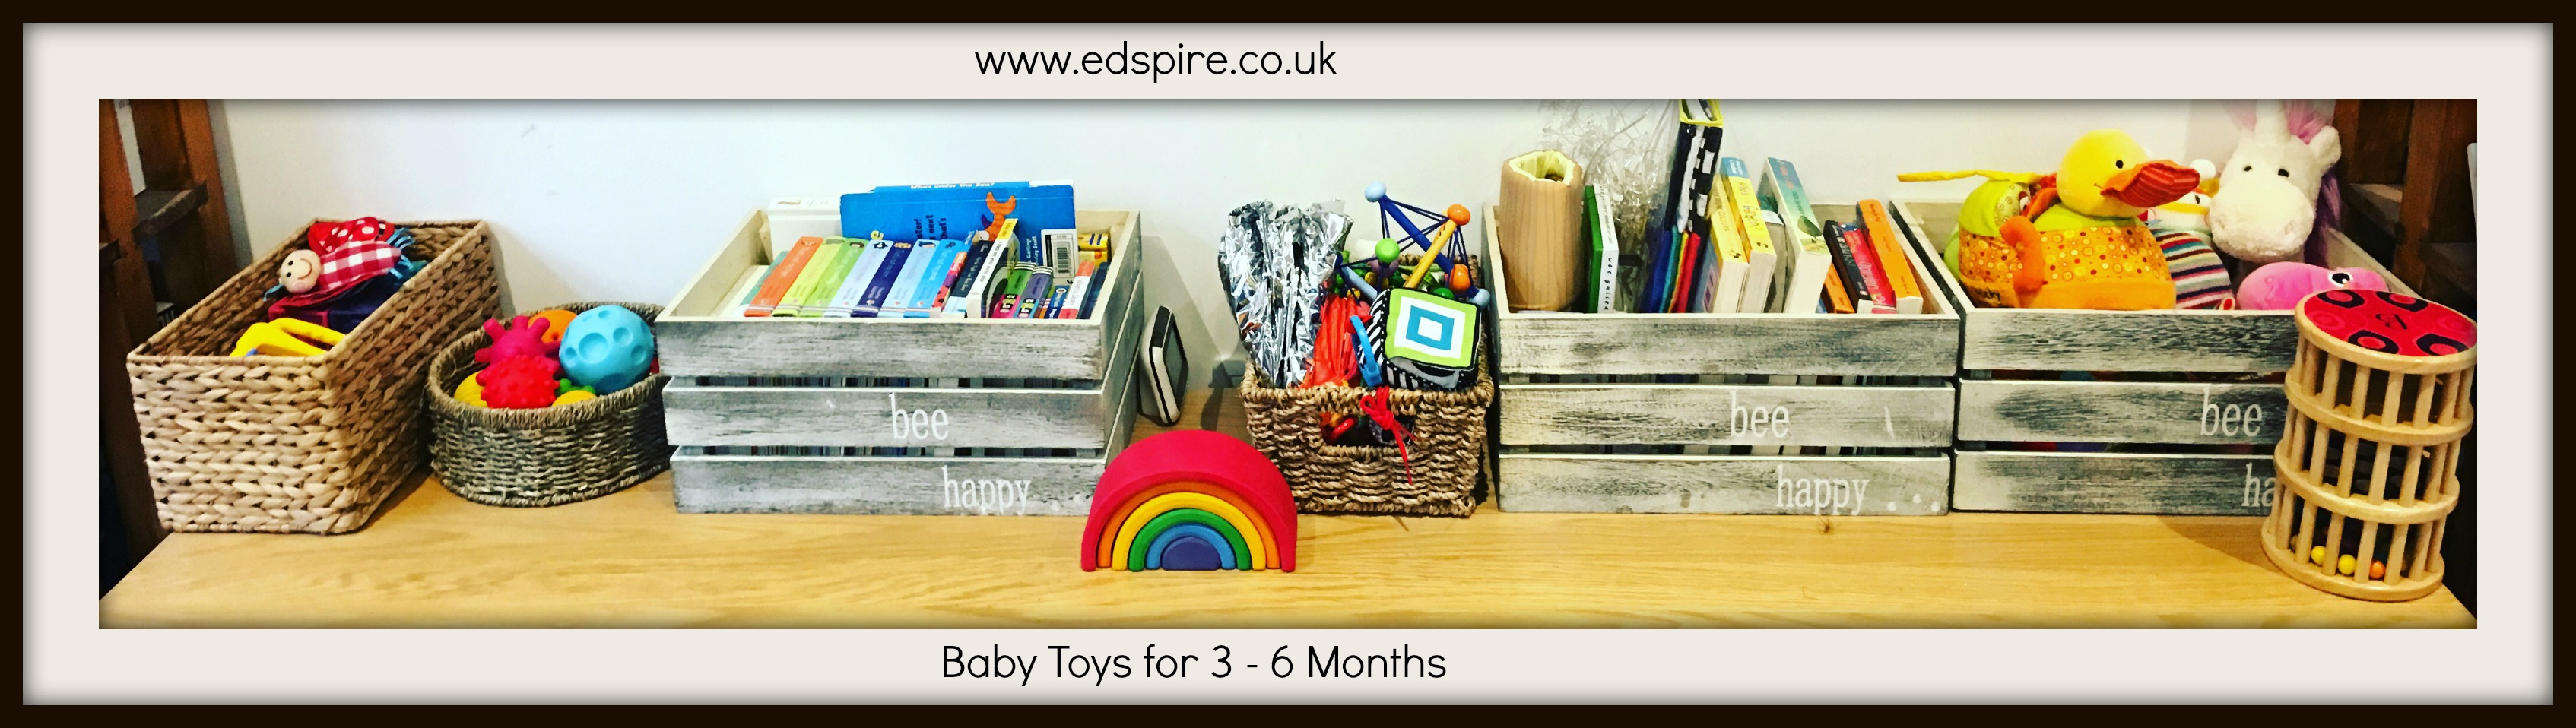 6 Month Old Baby Toys Best Baby Toys 3 6 Months Old Edspire